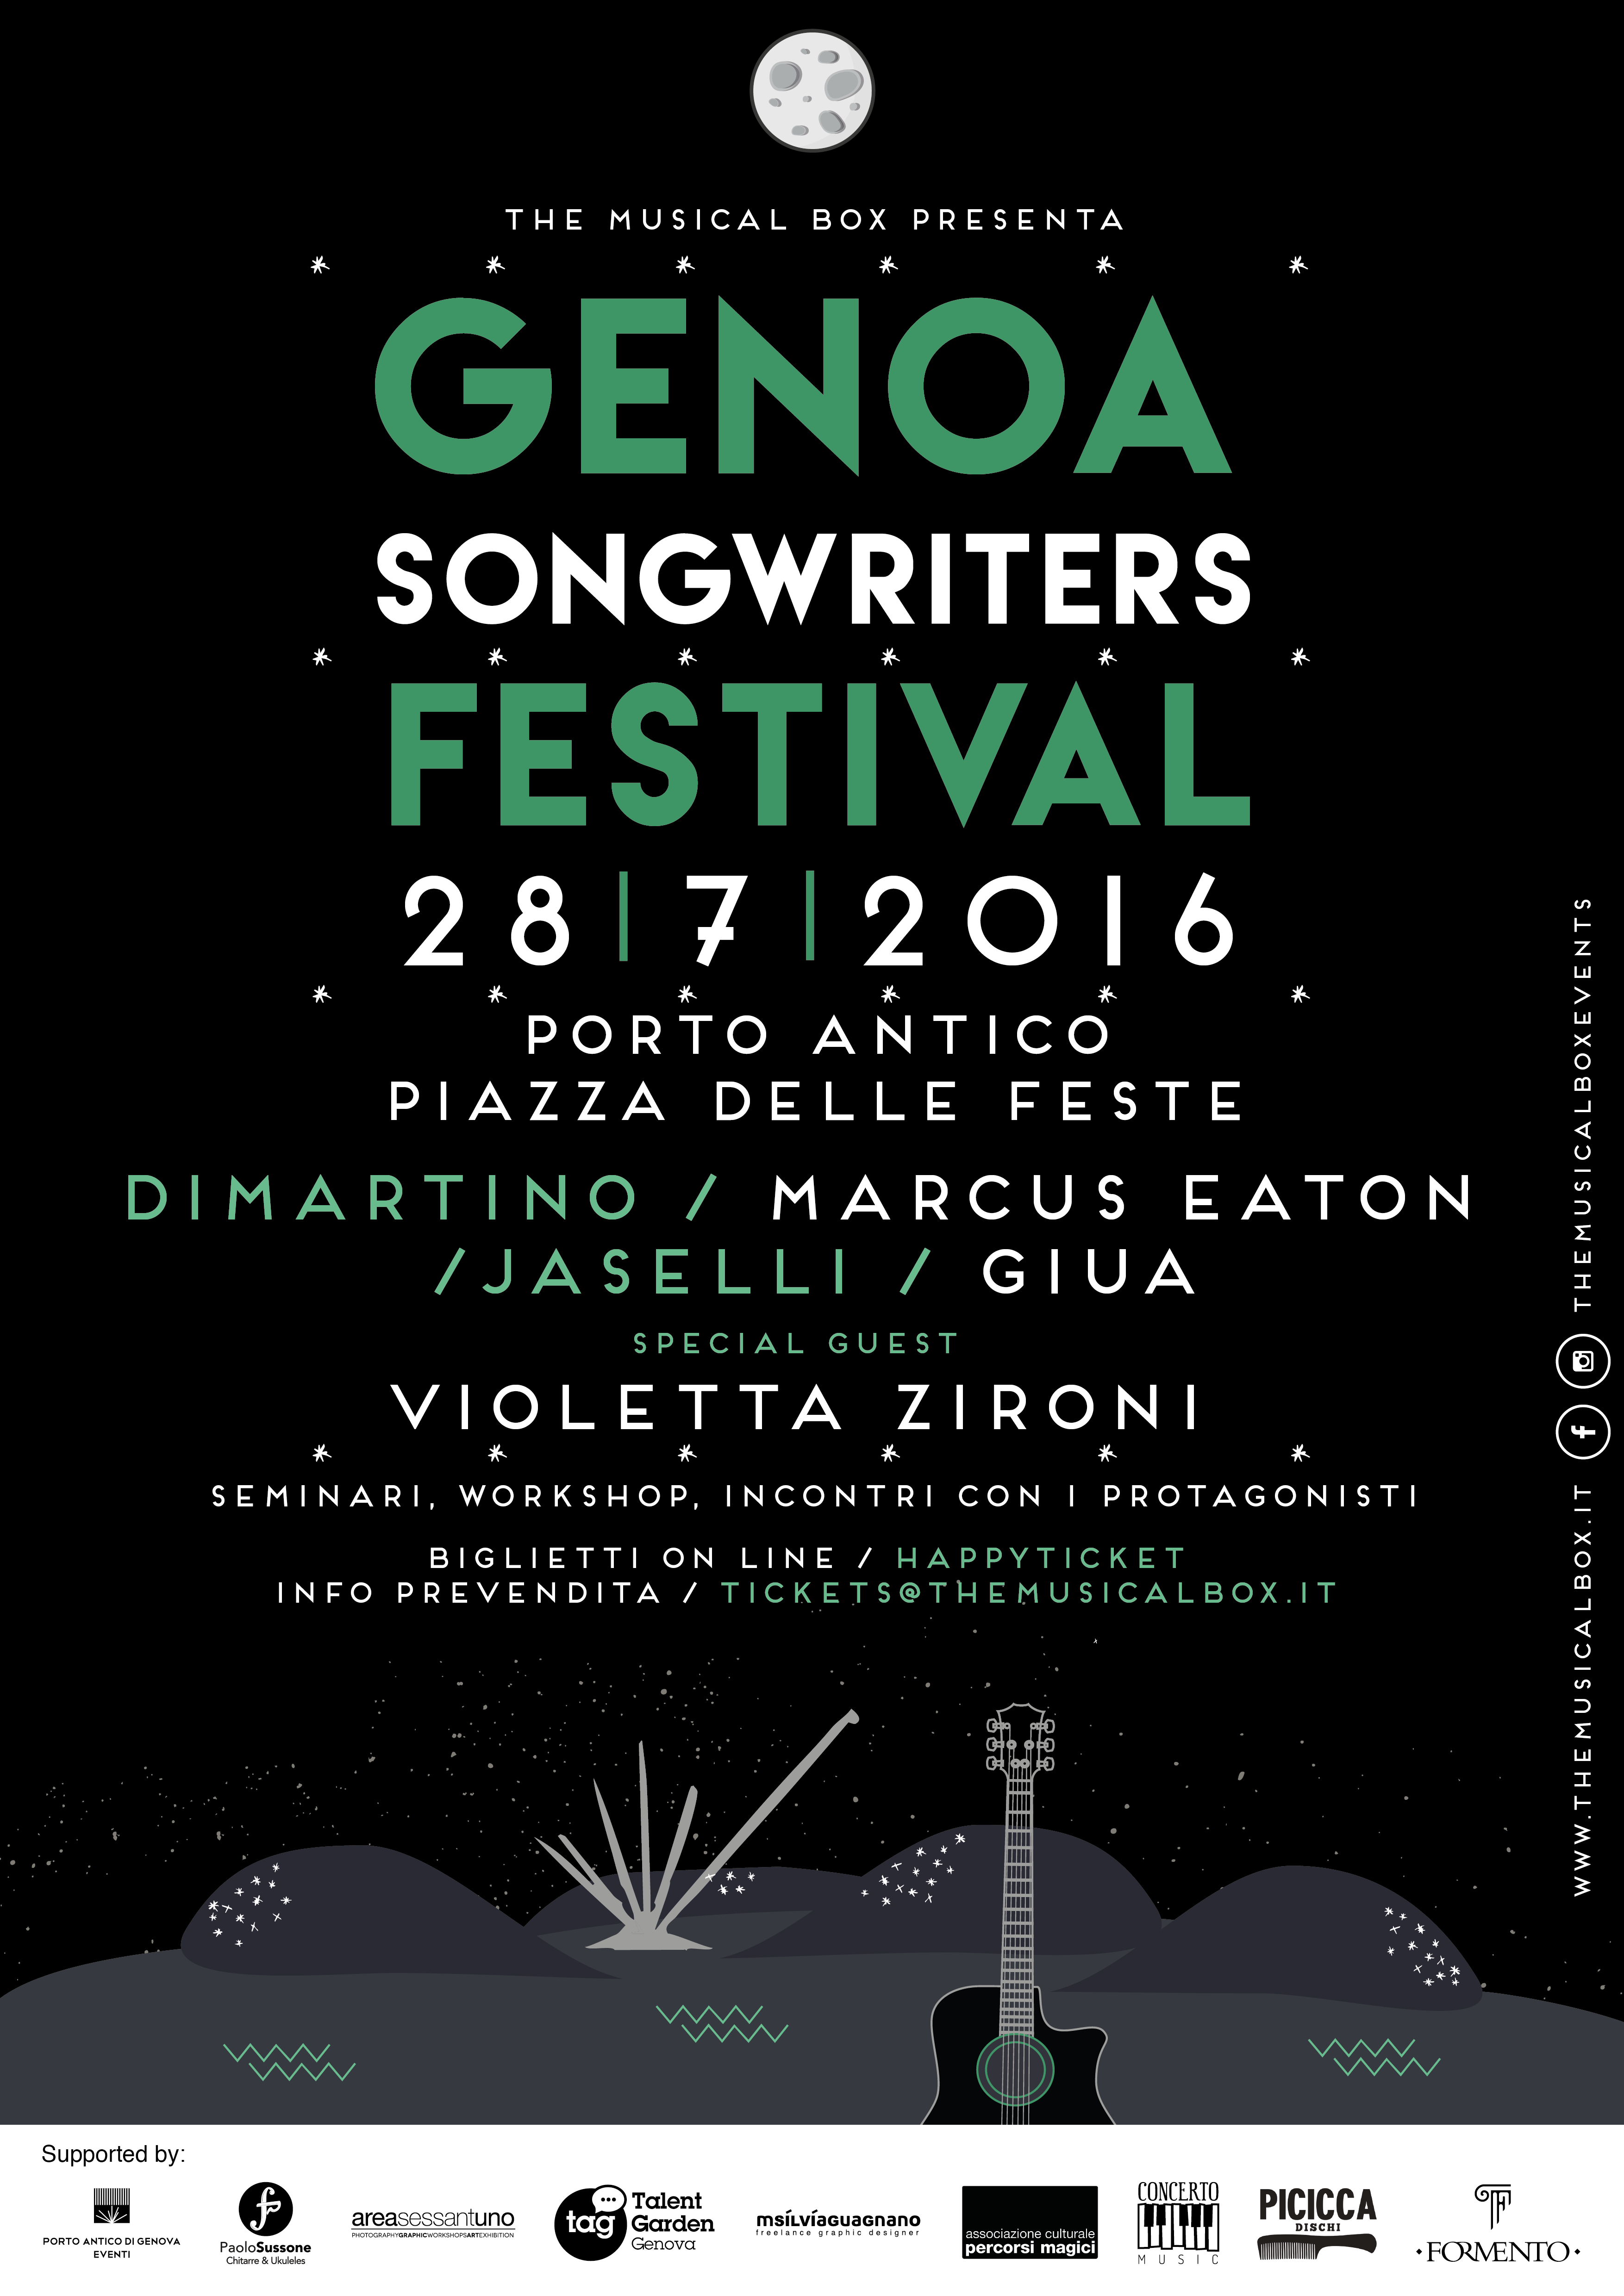 GENOA SONGWRITERS FESTIVAL